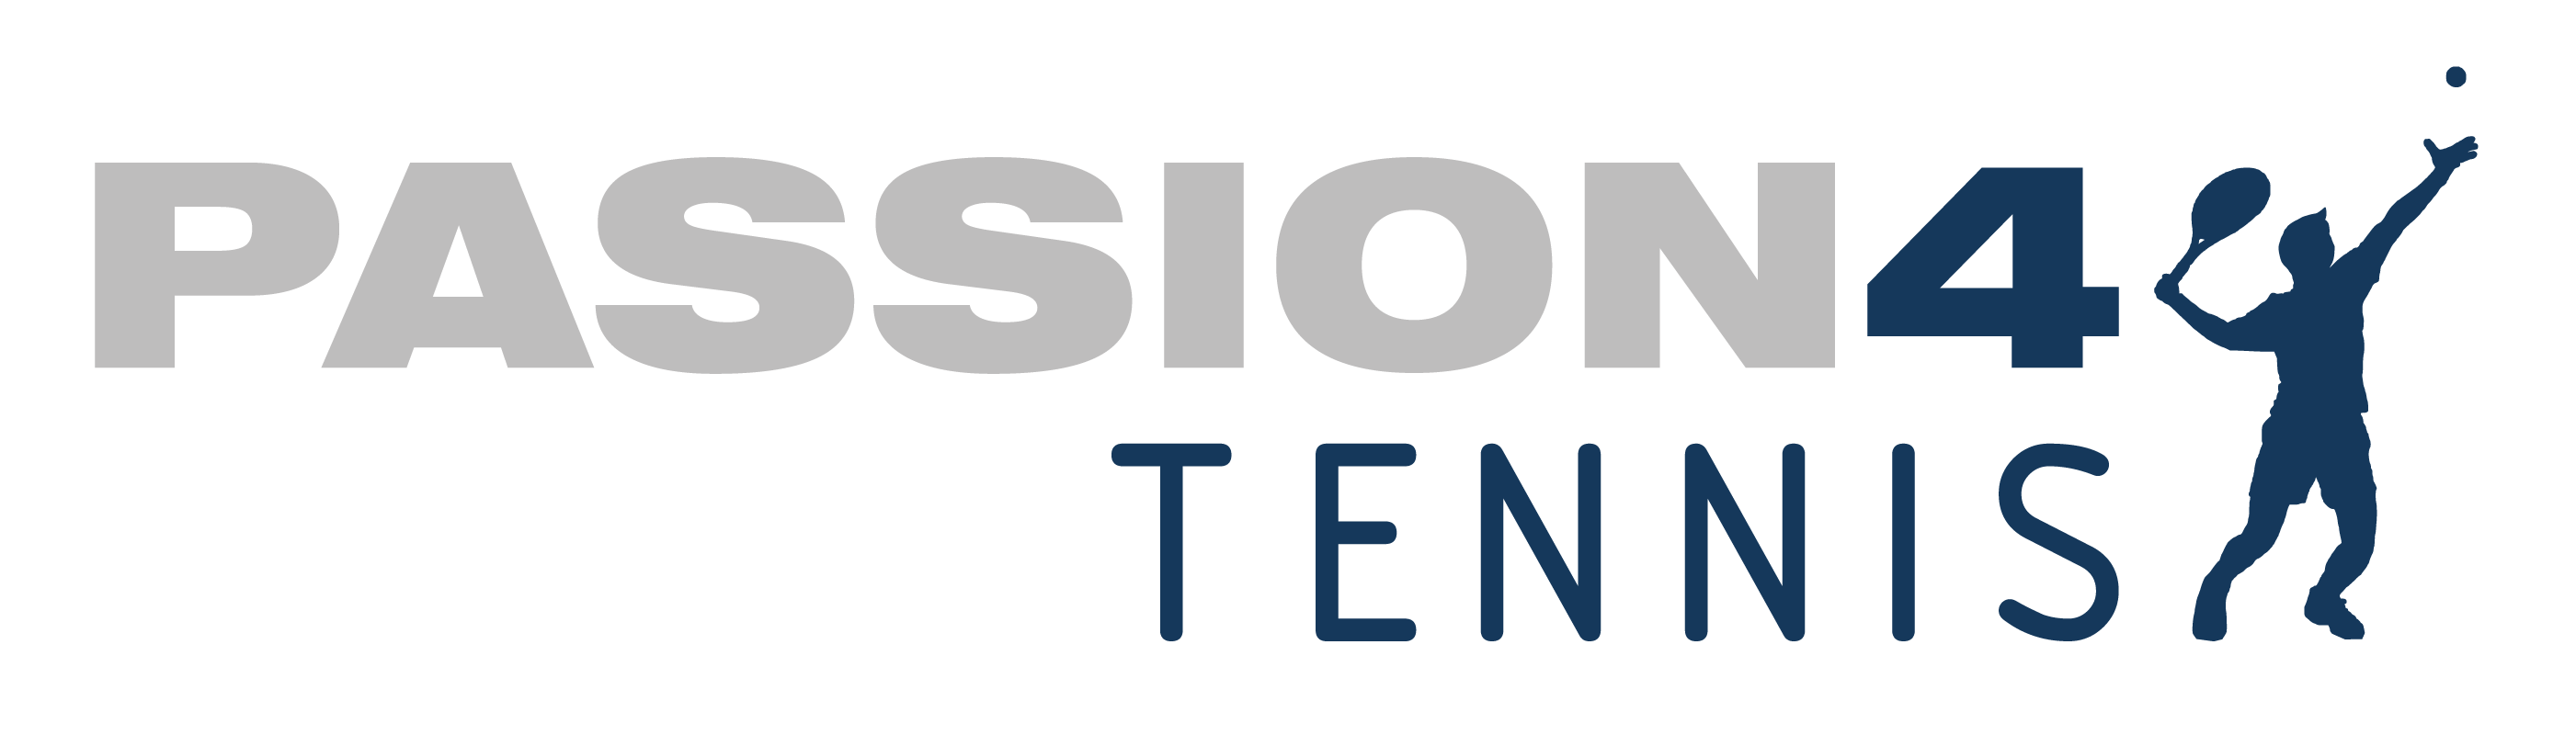 Passion4 TENNIS Talent Support